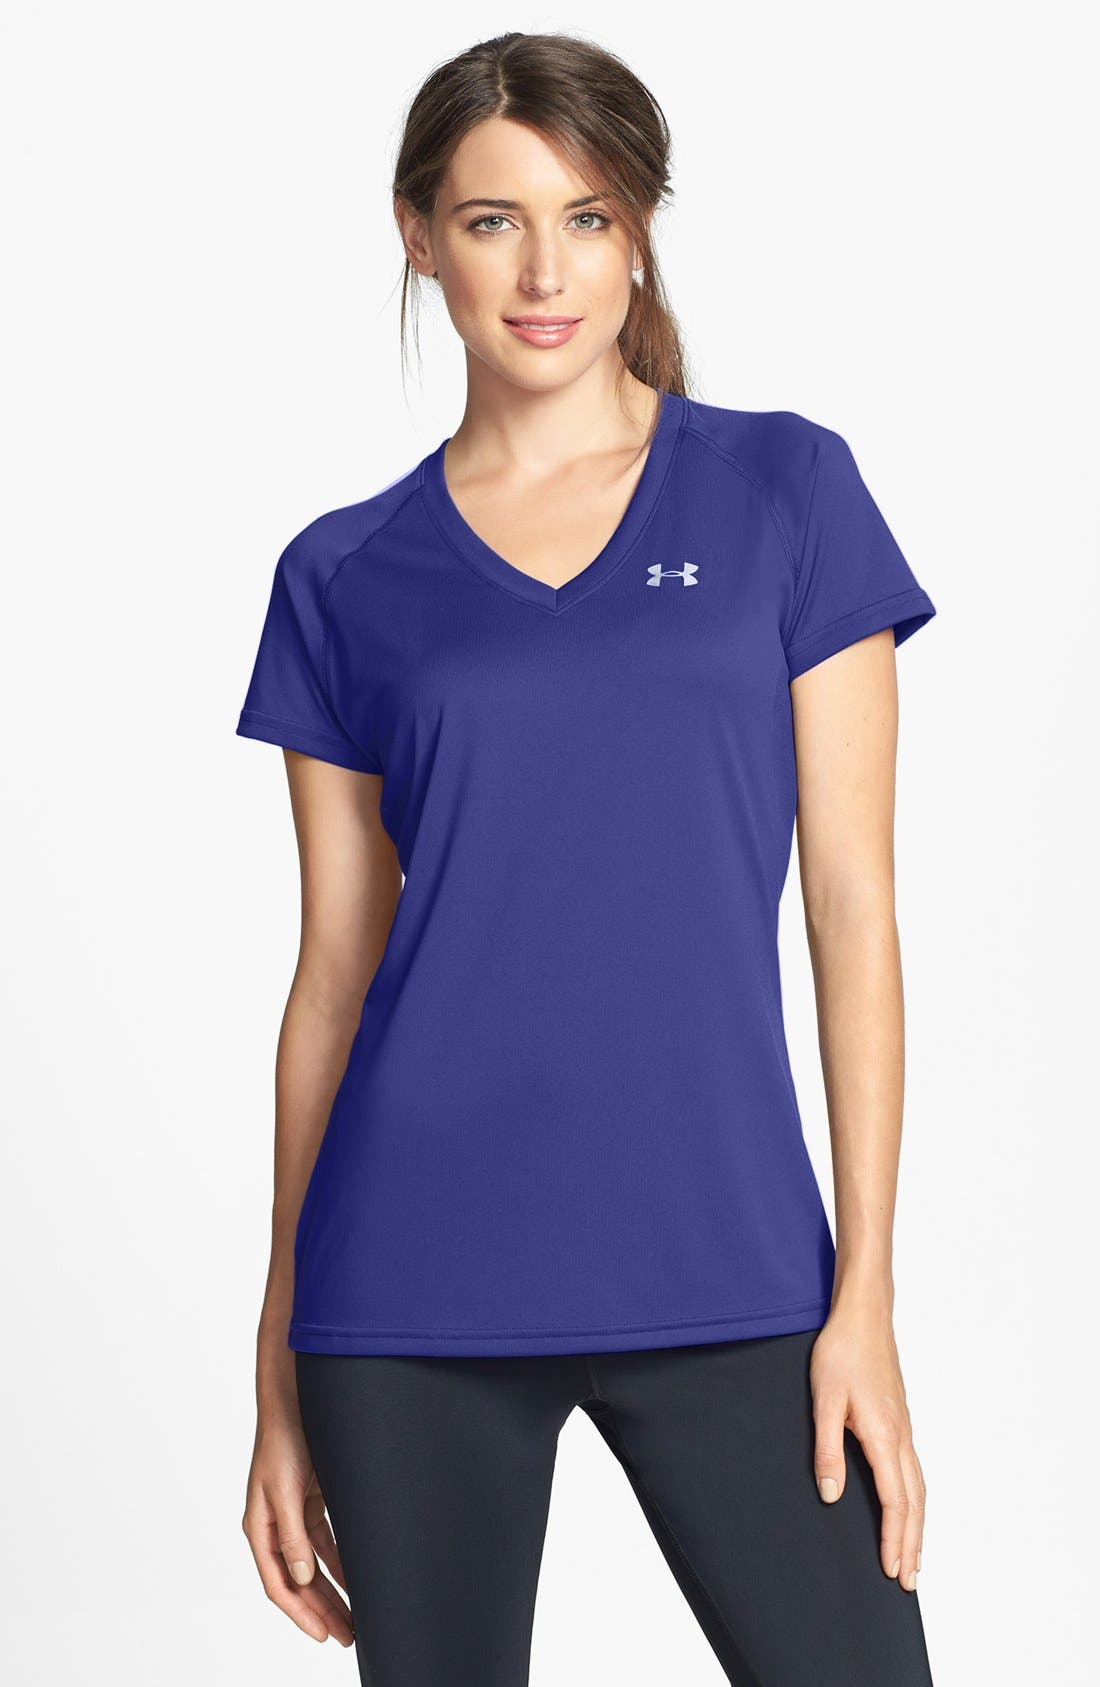 Alternate Image 1 Selected - Under Armour 'New Tech' Tee